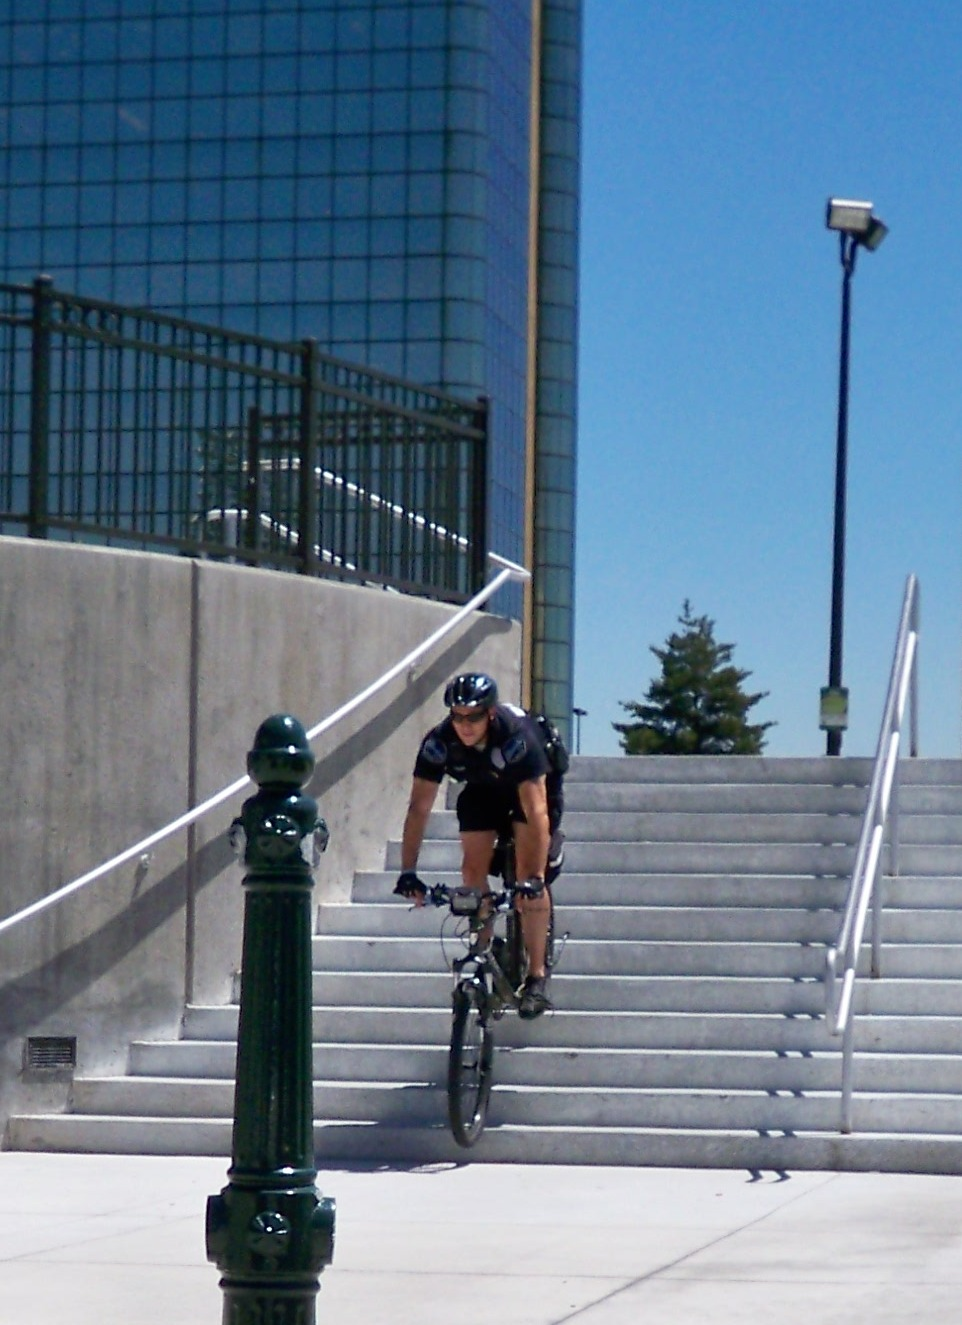 officer going down stairs on bike